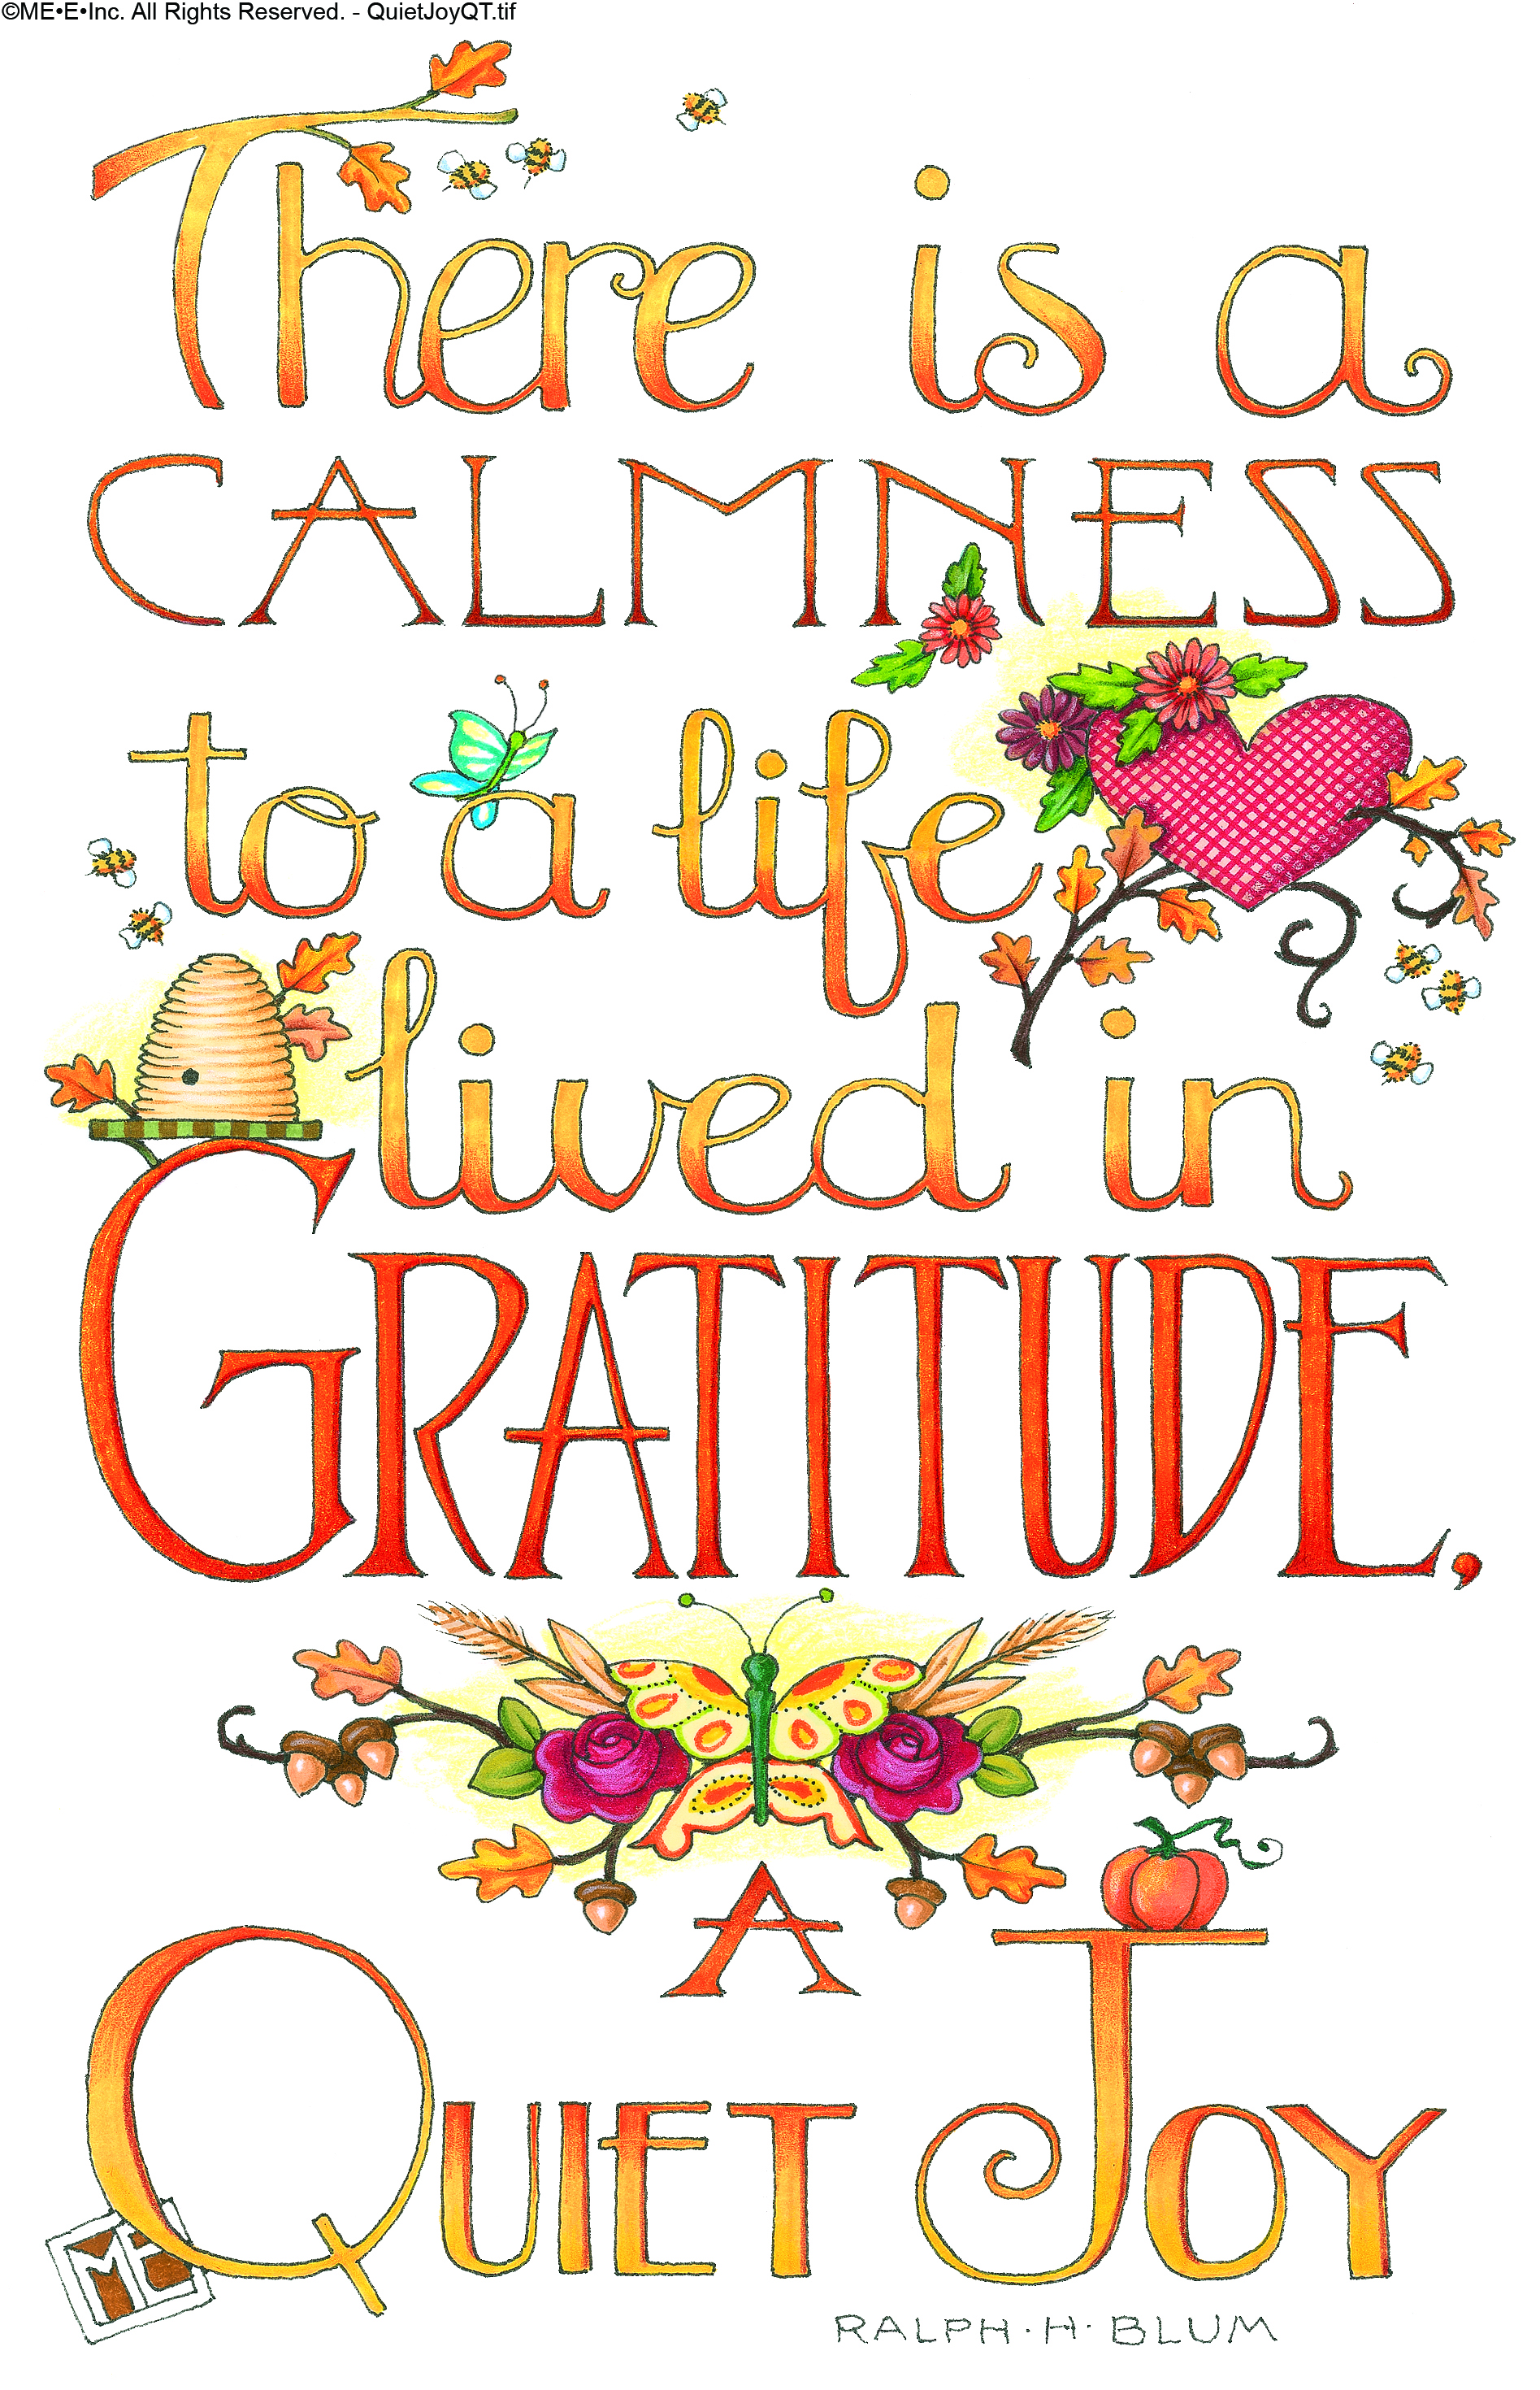 Inspiring Gratitude Free Printable | American Greetings Blog